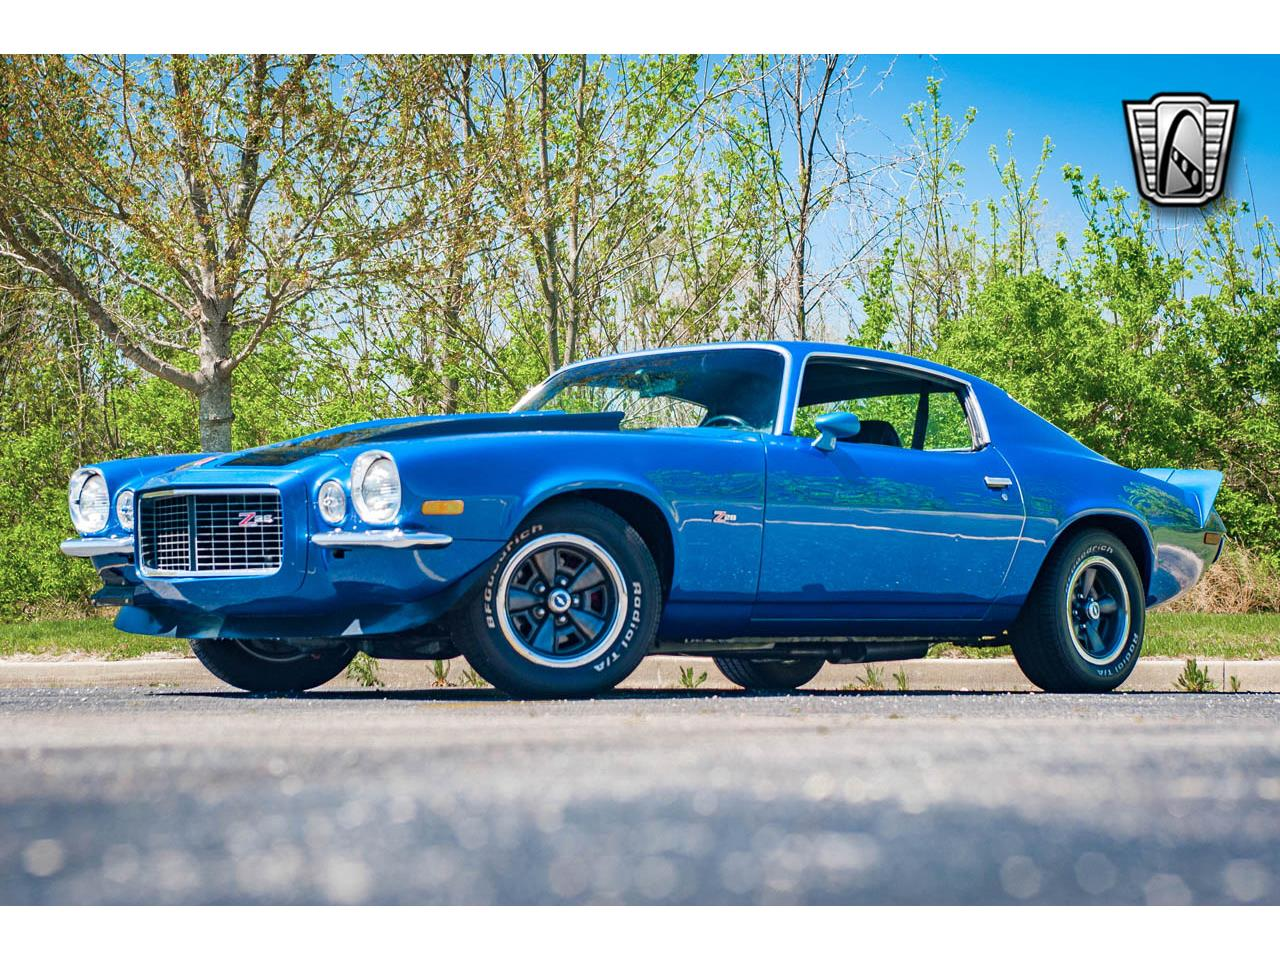 Large Picture of Classic 1971 Camaro located in Illinois - $35,995.00 Offered by Gateway Classic Cars - St. Louis - QB8S